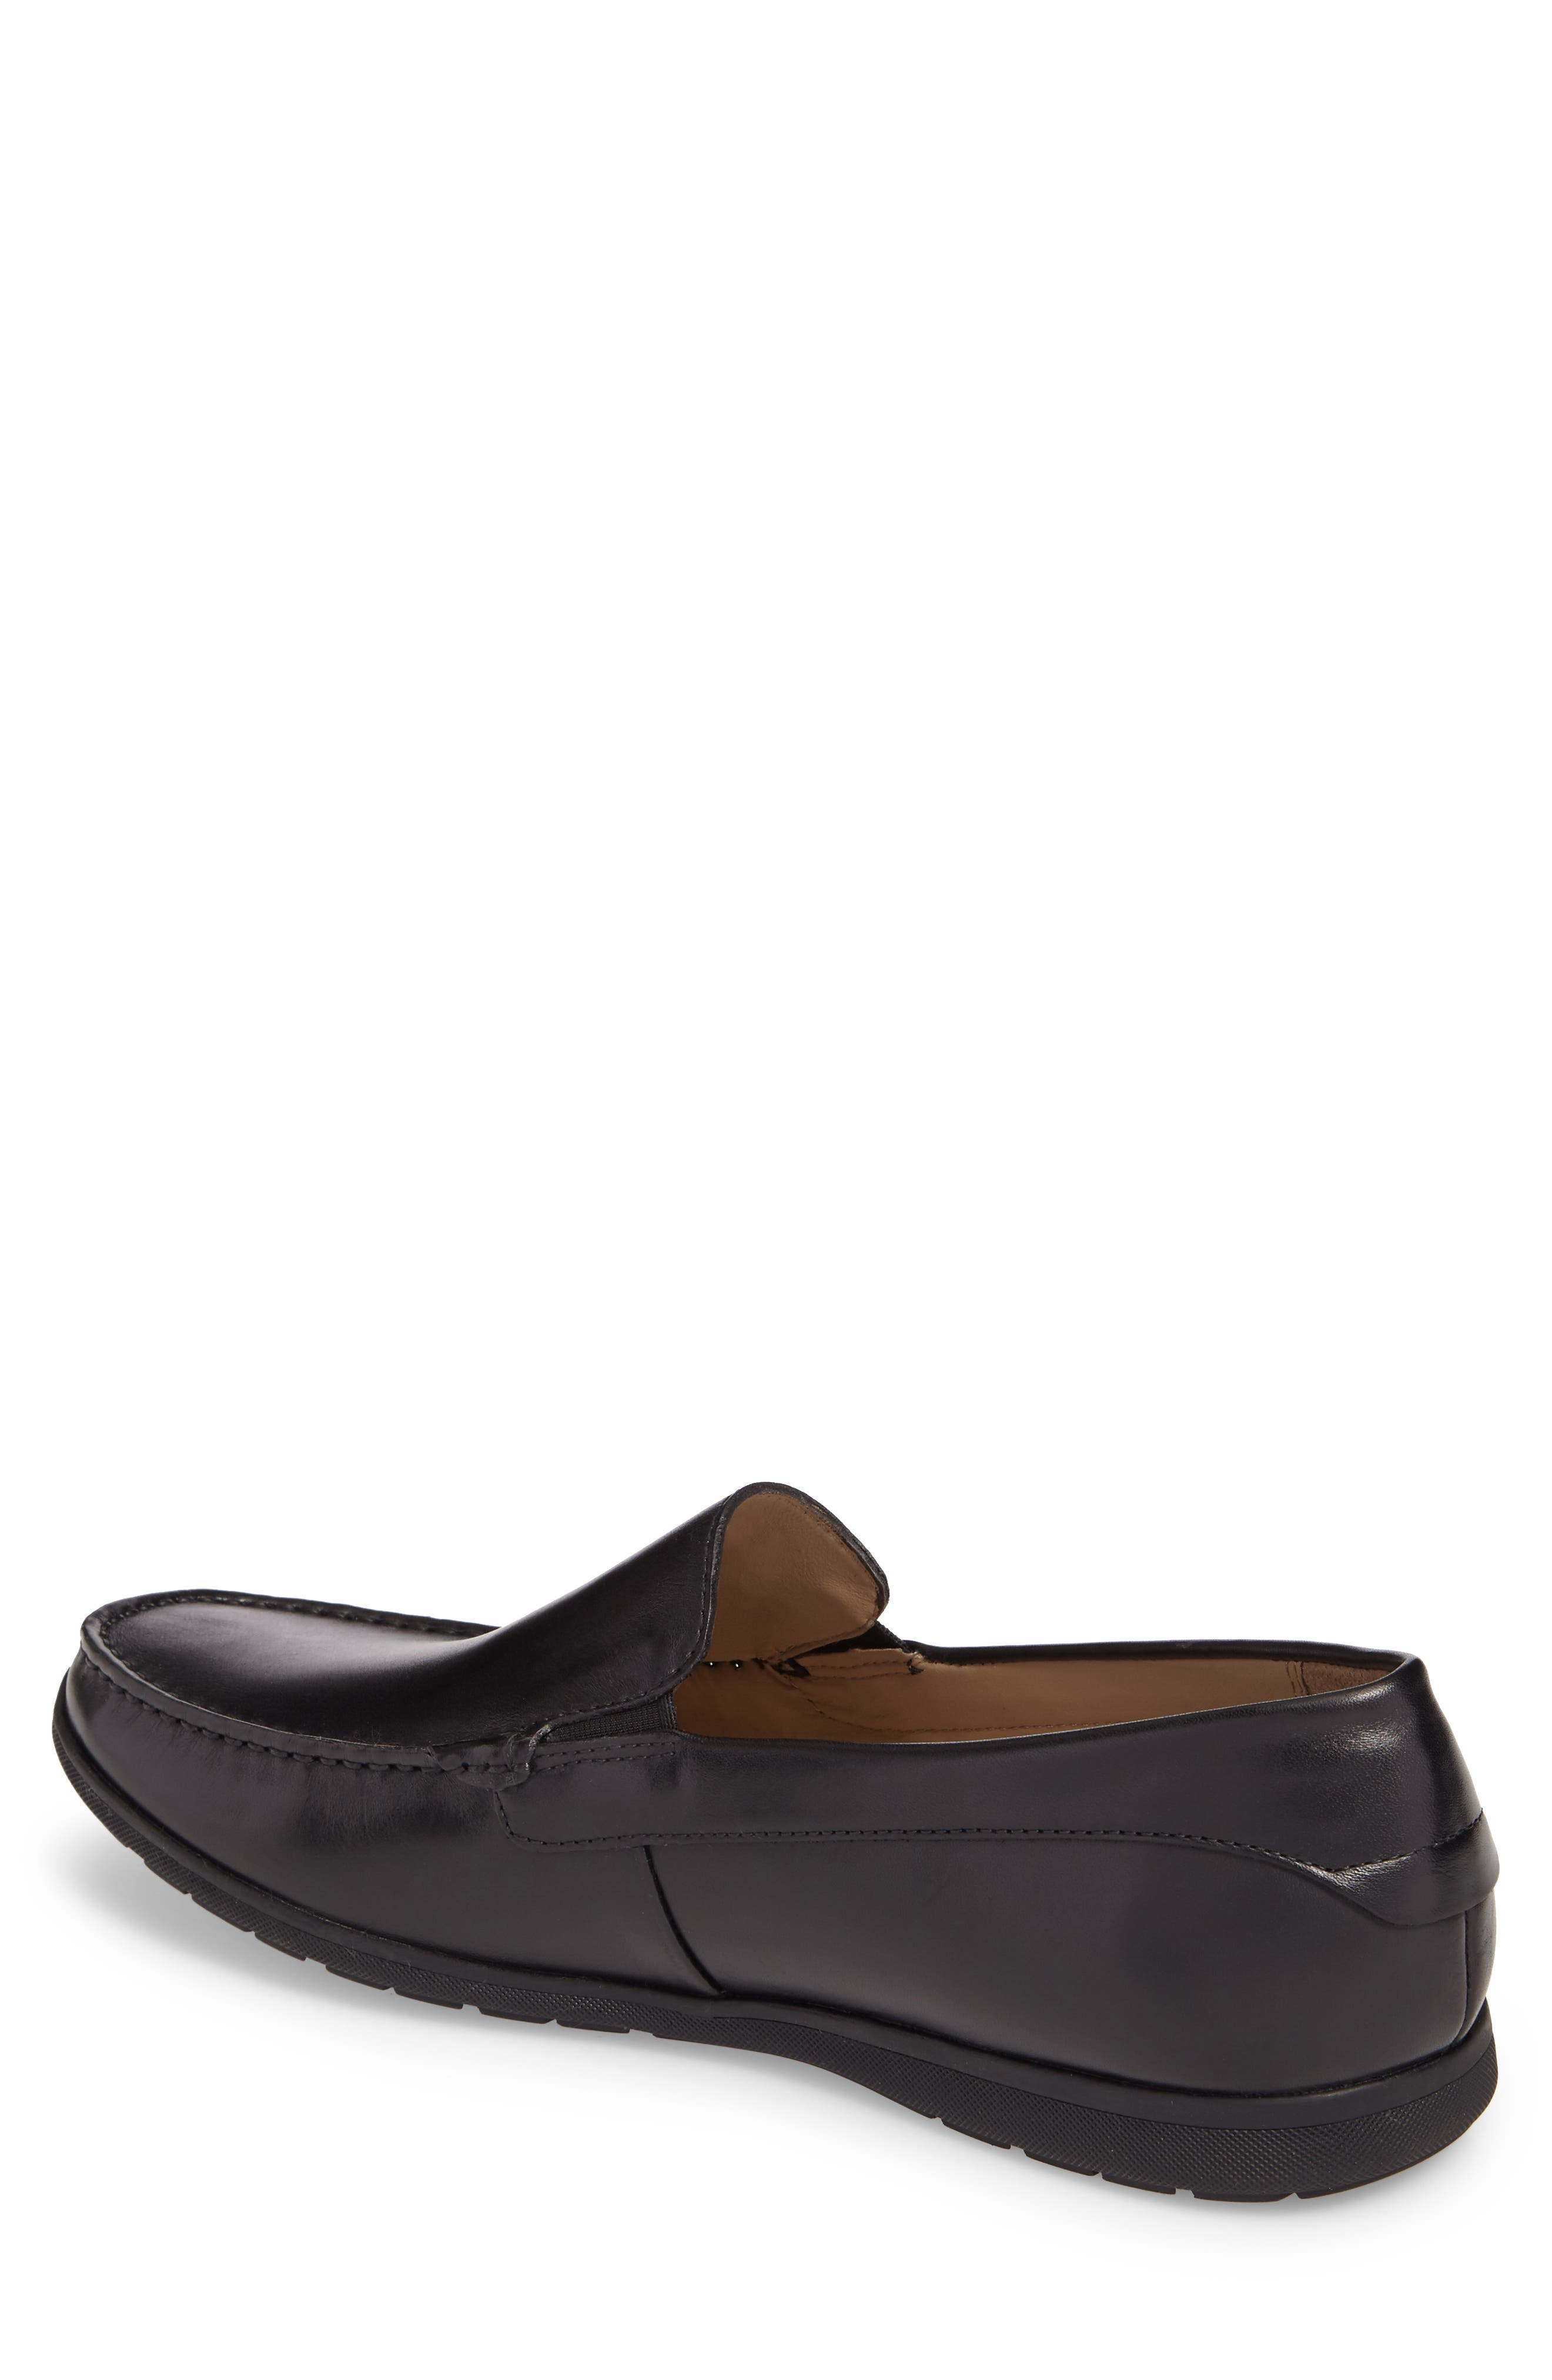 Classic Loafer,                             Alternate thumbnail 2, color,                             Black Leather